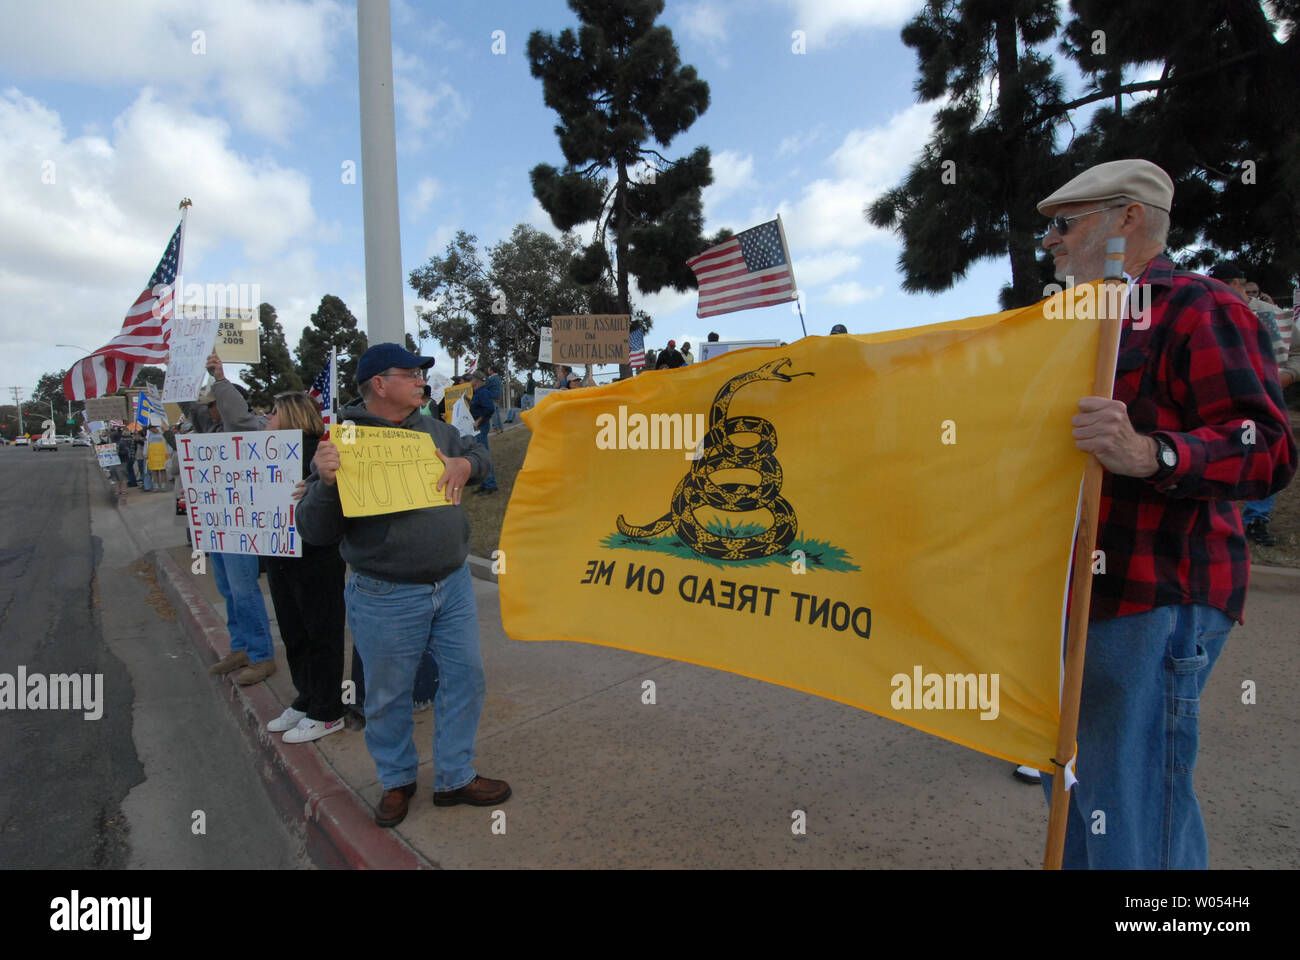 Several hundred protesters participate in a anti-tax protest